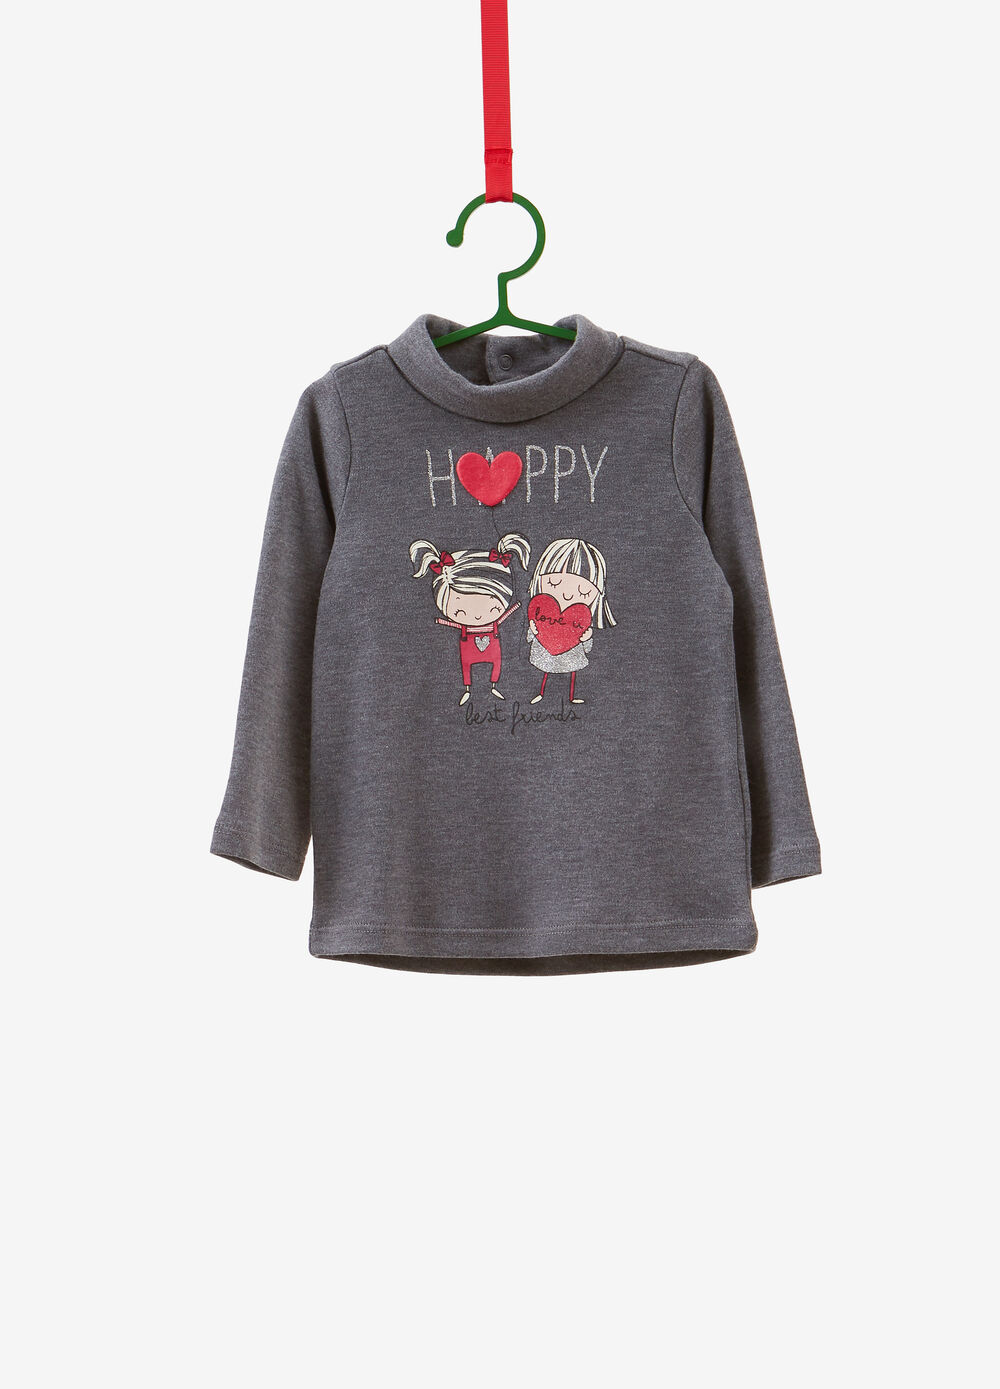 Turtleneck jumper in 100% cotton with glitter girl print